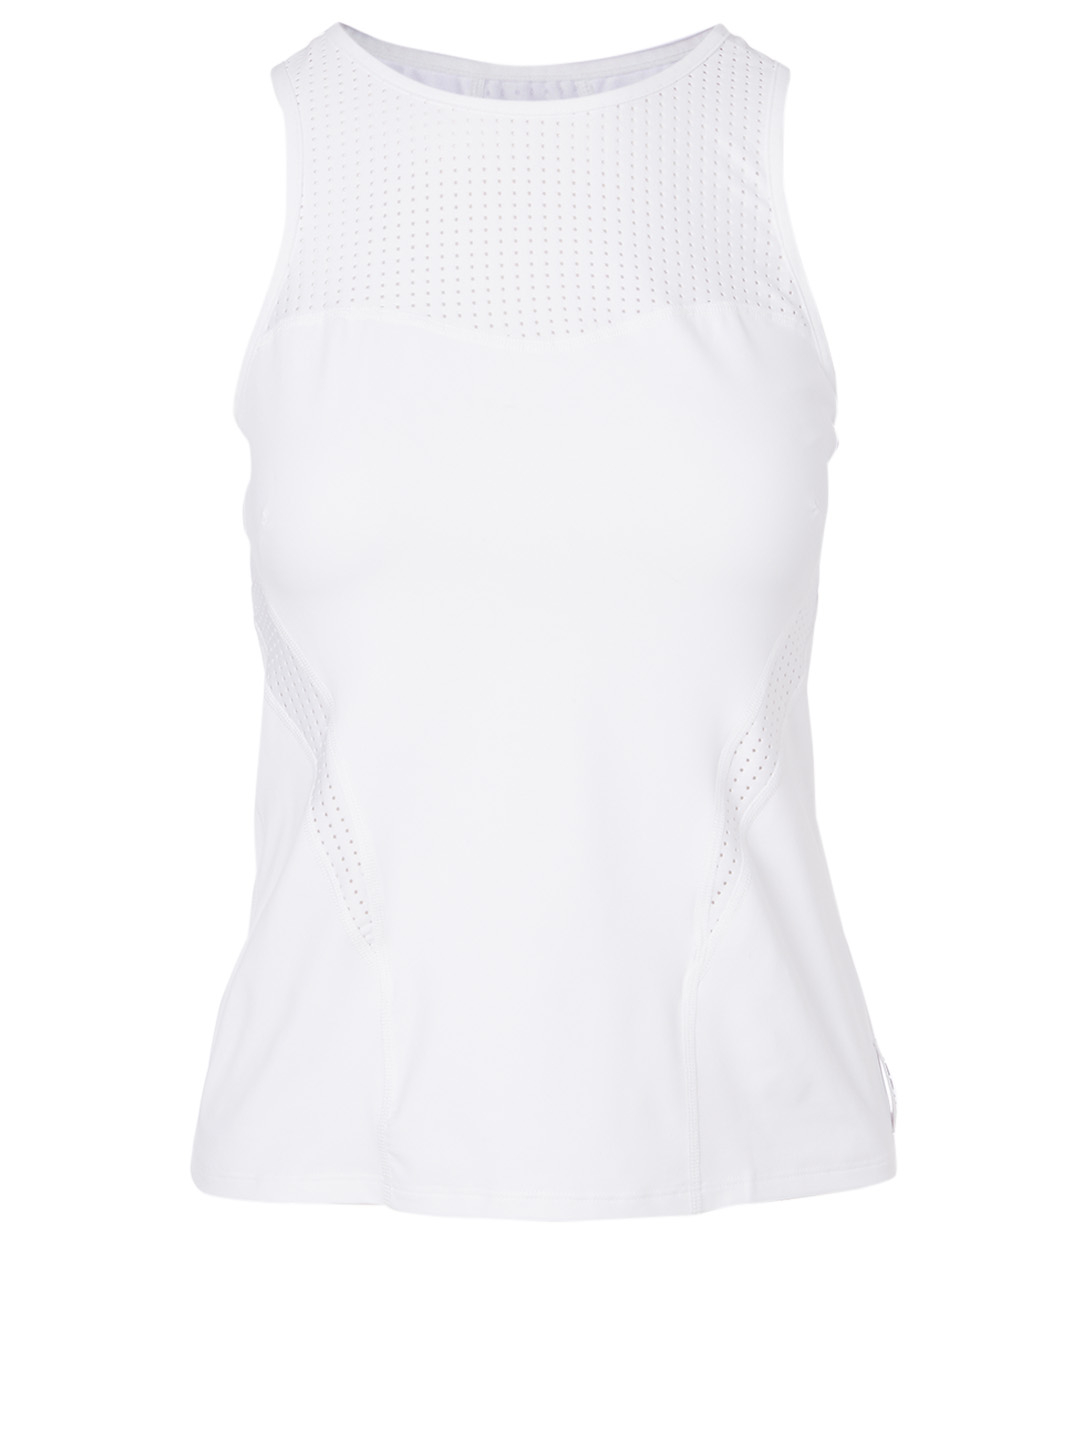 MICHI Galaxy Tank Top Women's White